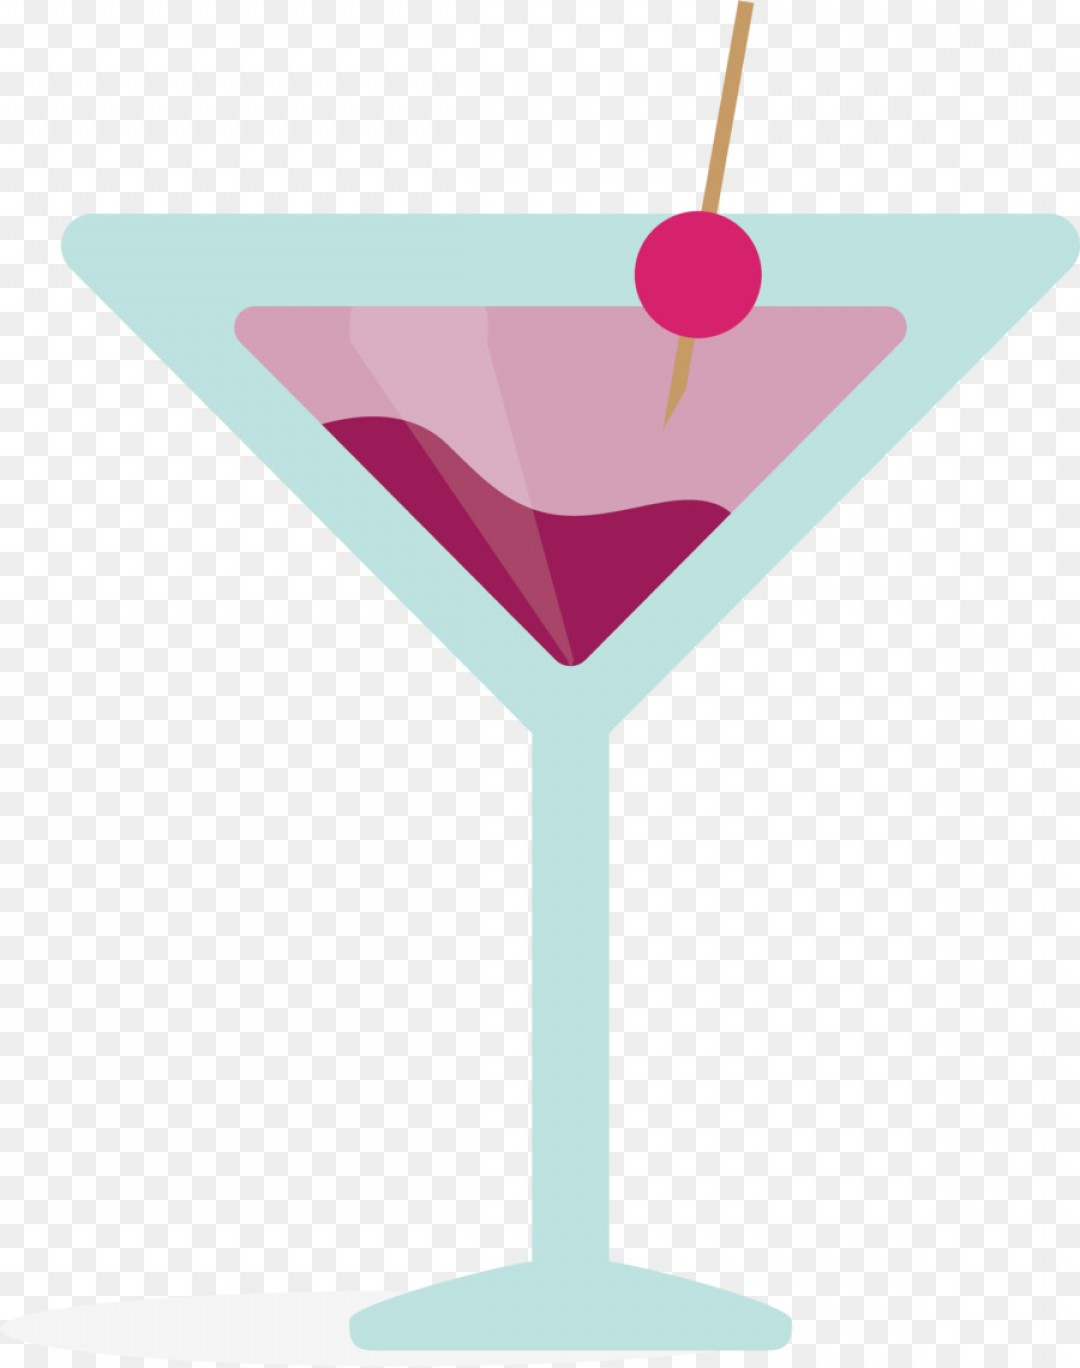 Png Cocktail Soft Drink Cartoon Cherry Drink Vector.